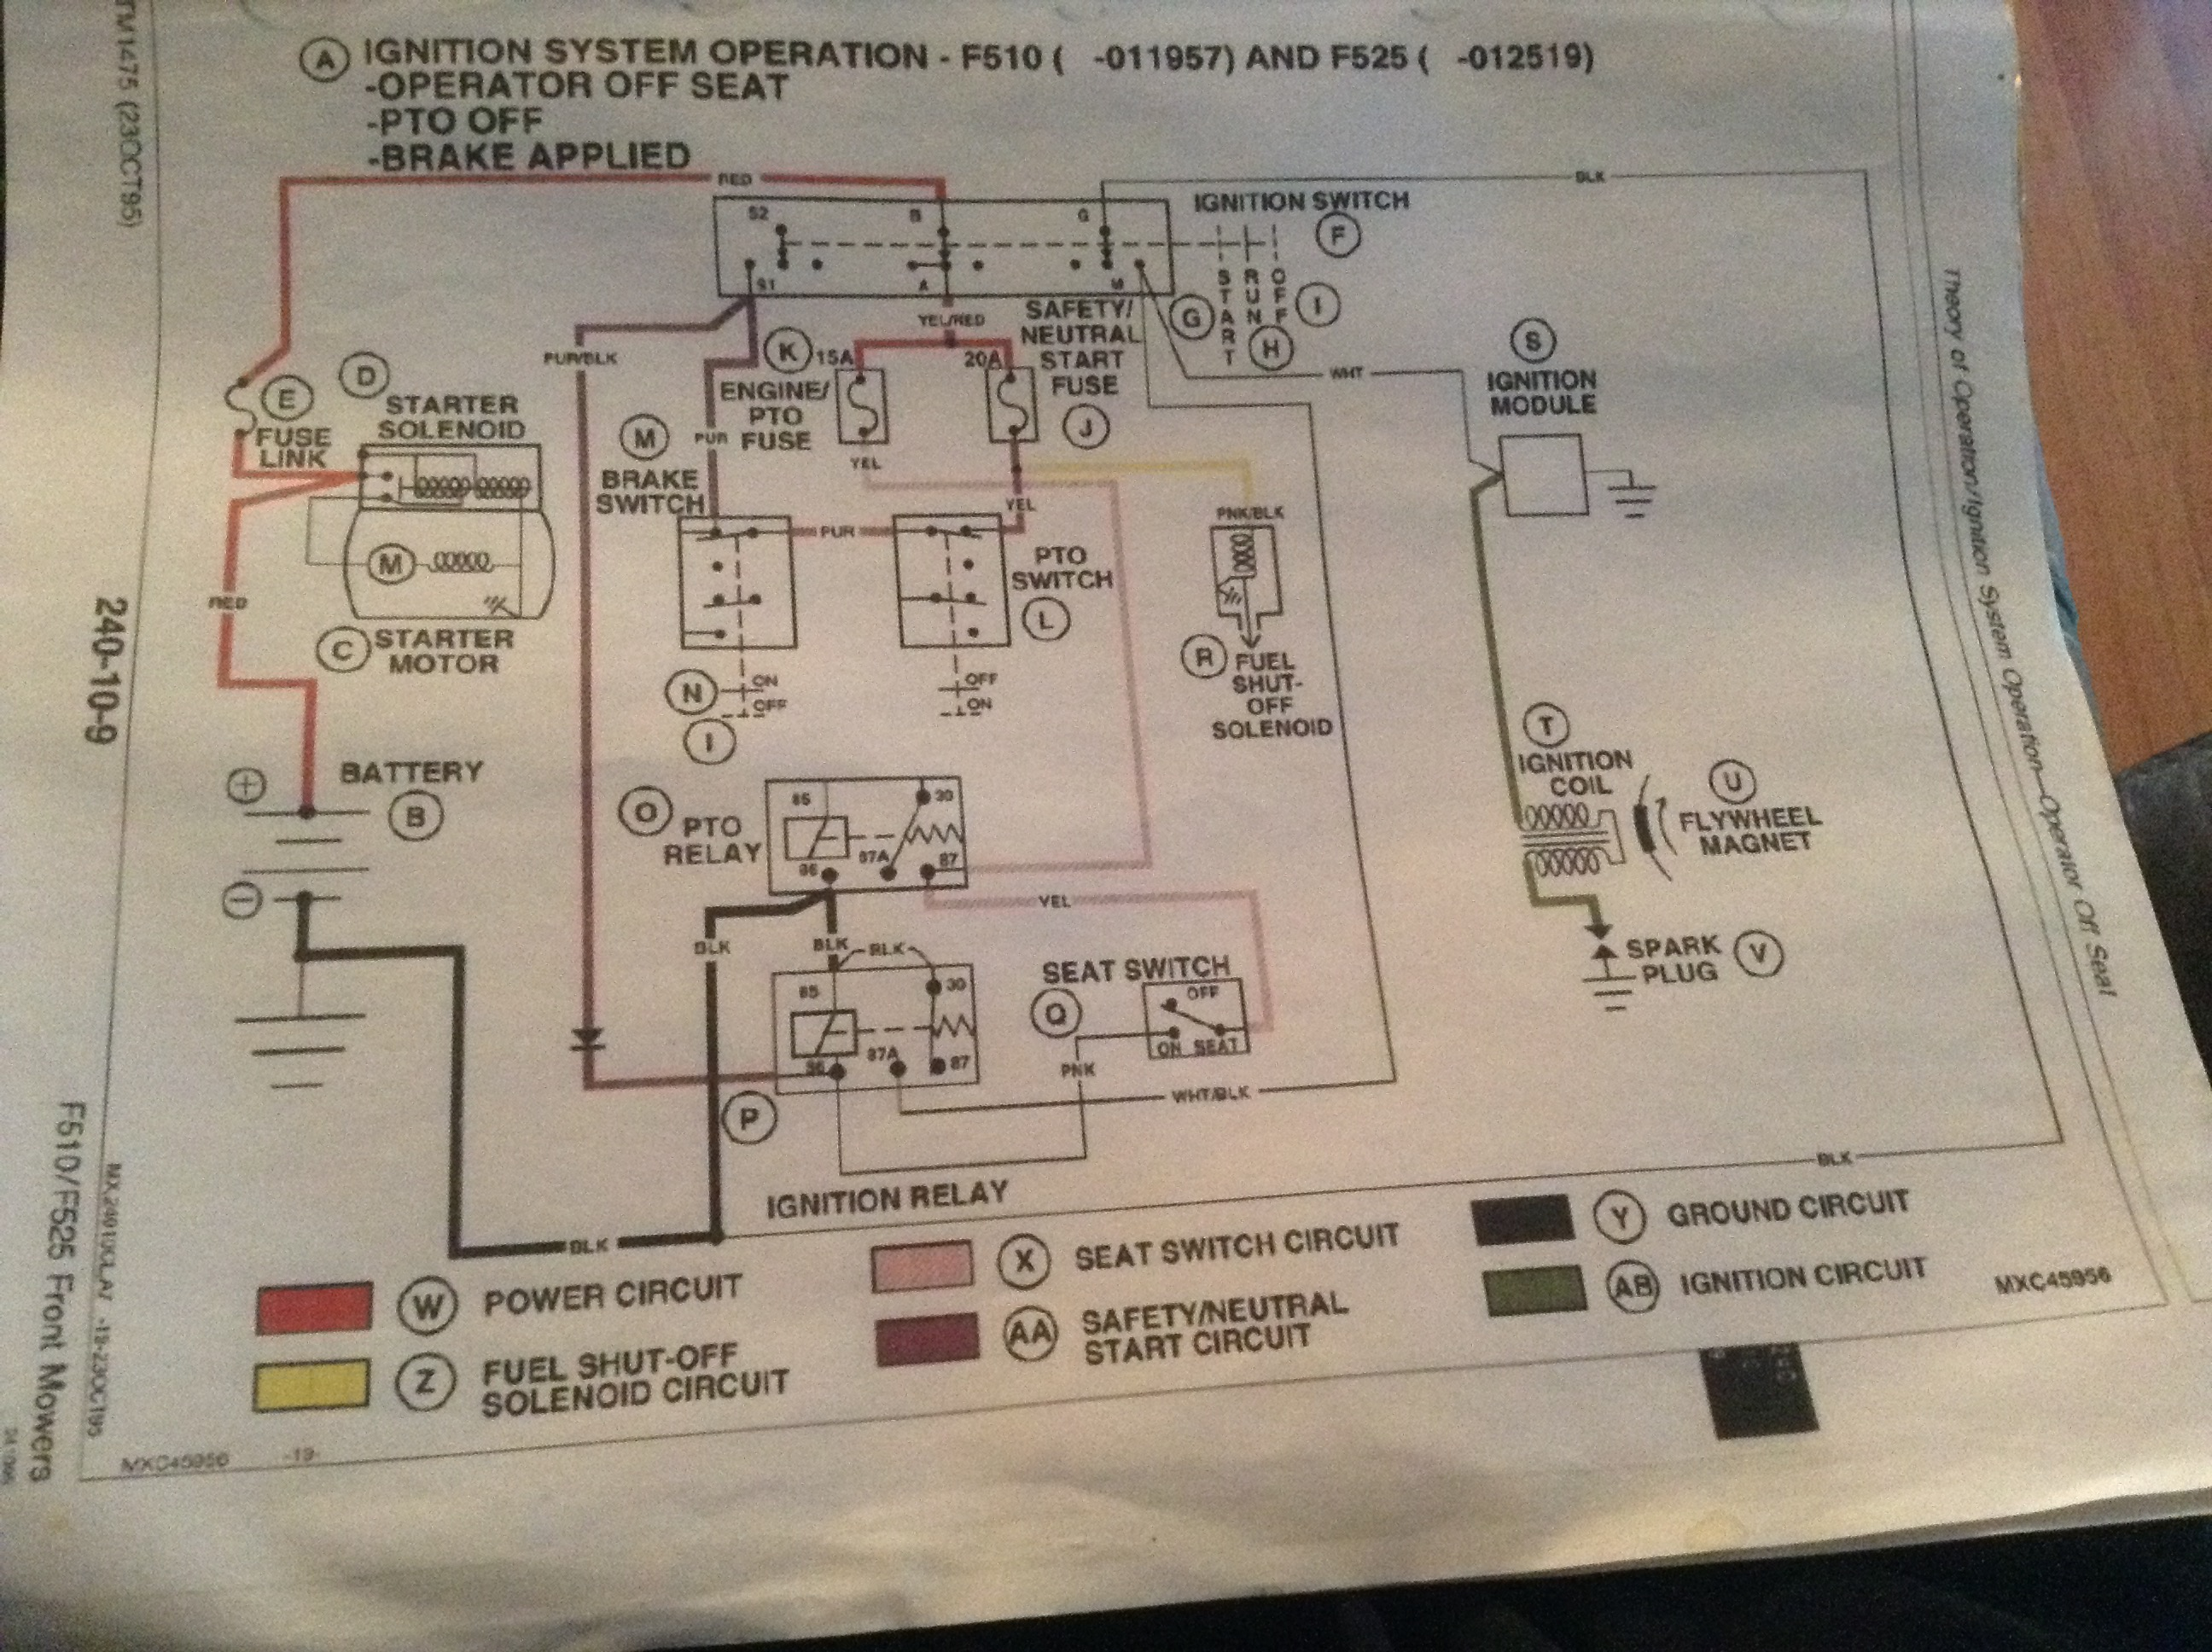 [QNCB_7524]  John Deere F525 NO SPARK | Page 2 | My Tractor Forum | Wiring Diagram John Deere F510 |  | My Tractor Forum